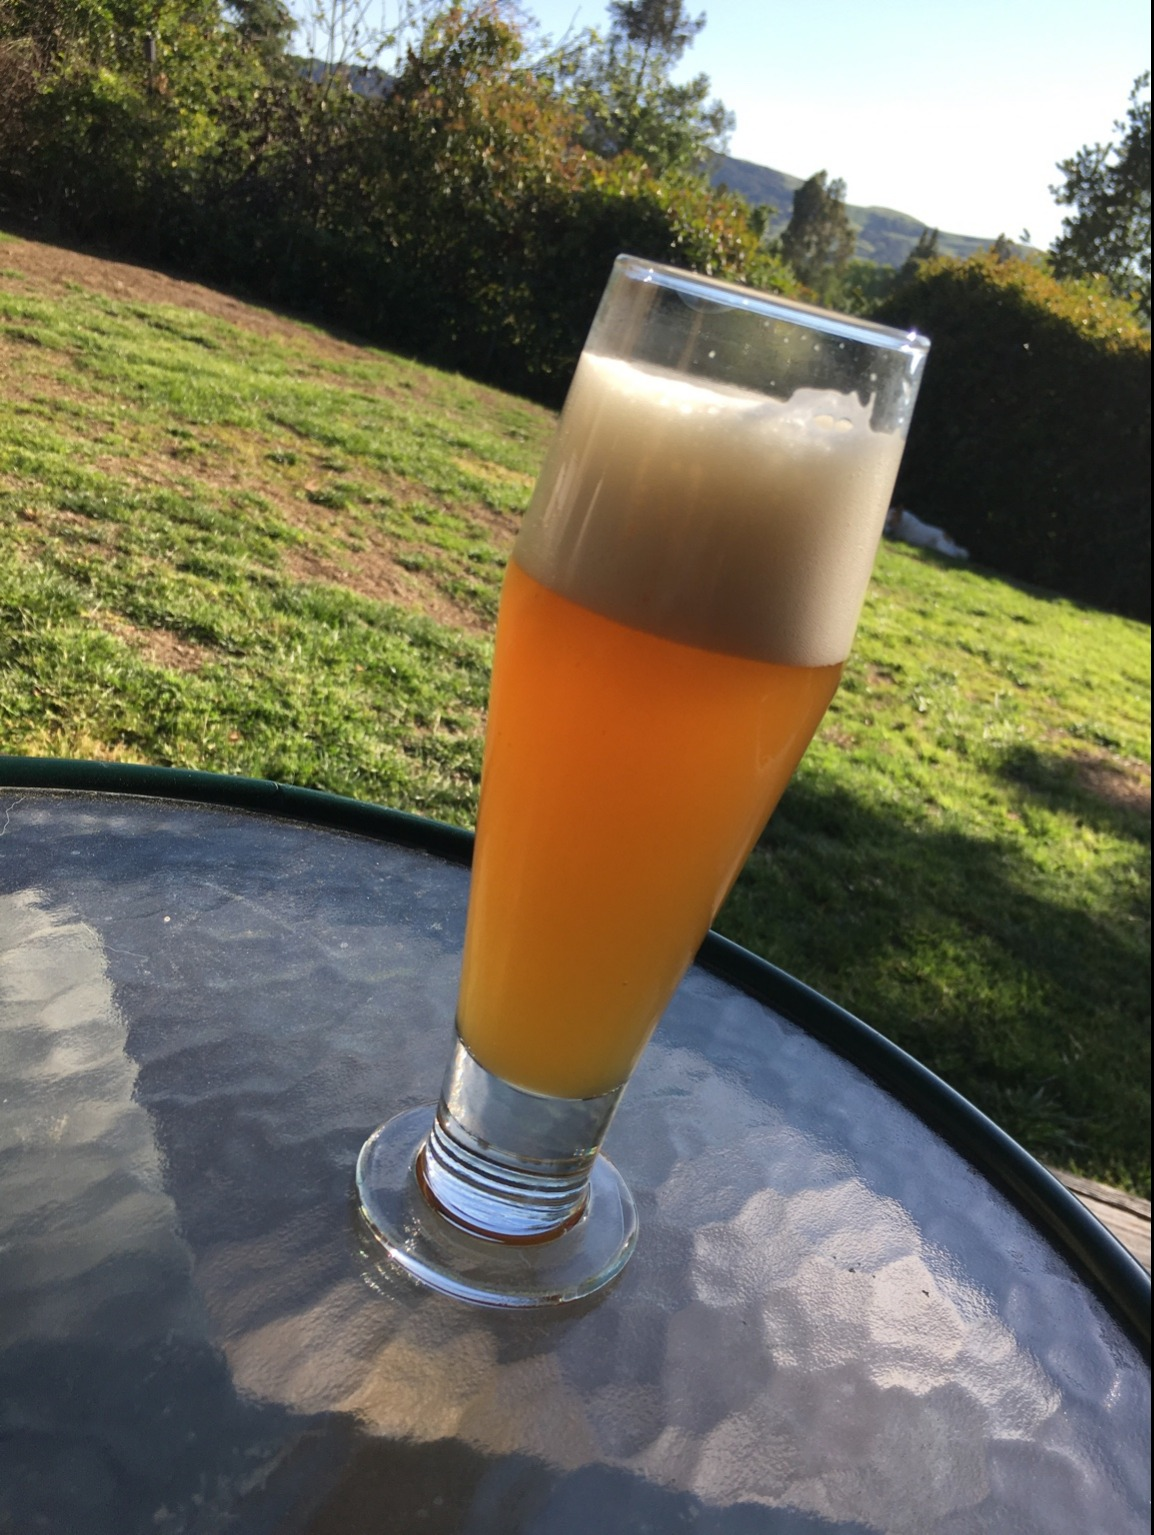 https://picobrewcontent.blob.core.windows.net/brewmarketplace/Beer/Gallery/3B1CE7587E8444D18D044EBE0C5CA2A6/Nesto%2527s Weizen?lastmod=636555376380000000